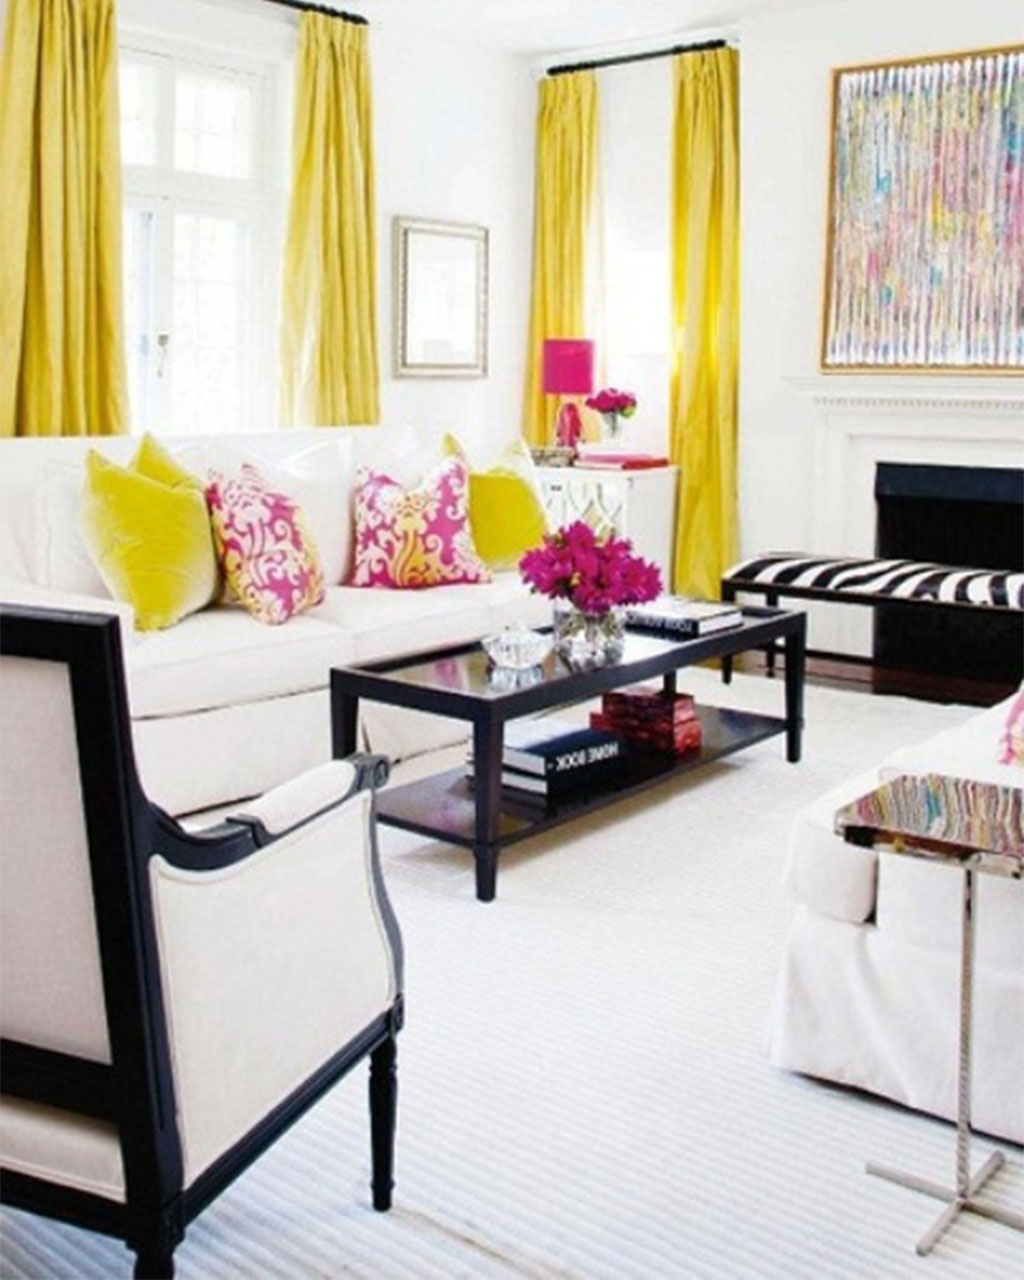 36 Living Room Decorating Ideas That Smells Like Spring ... on Living Room Decor  id=48044